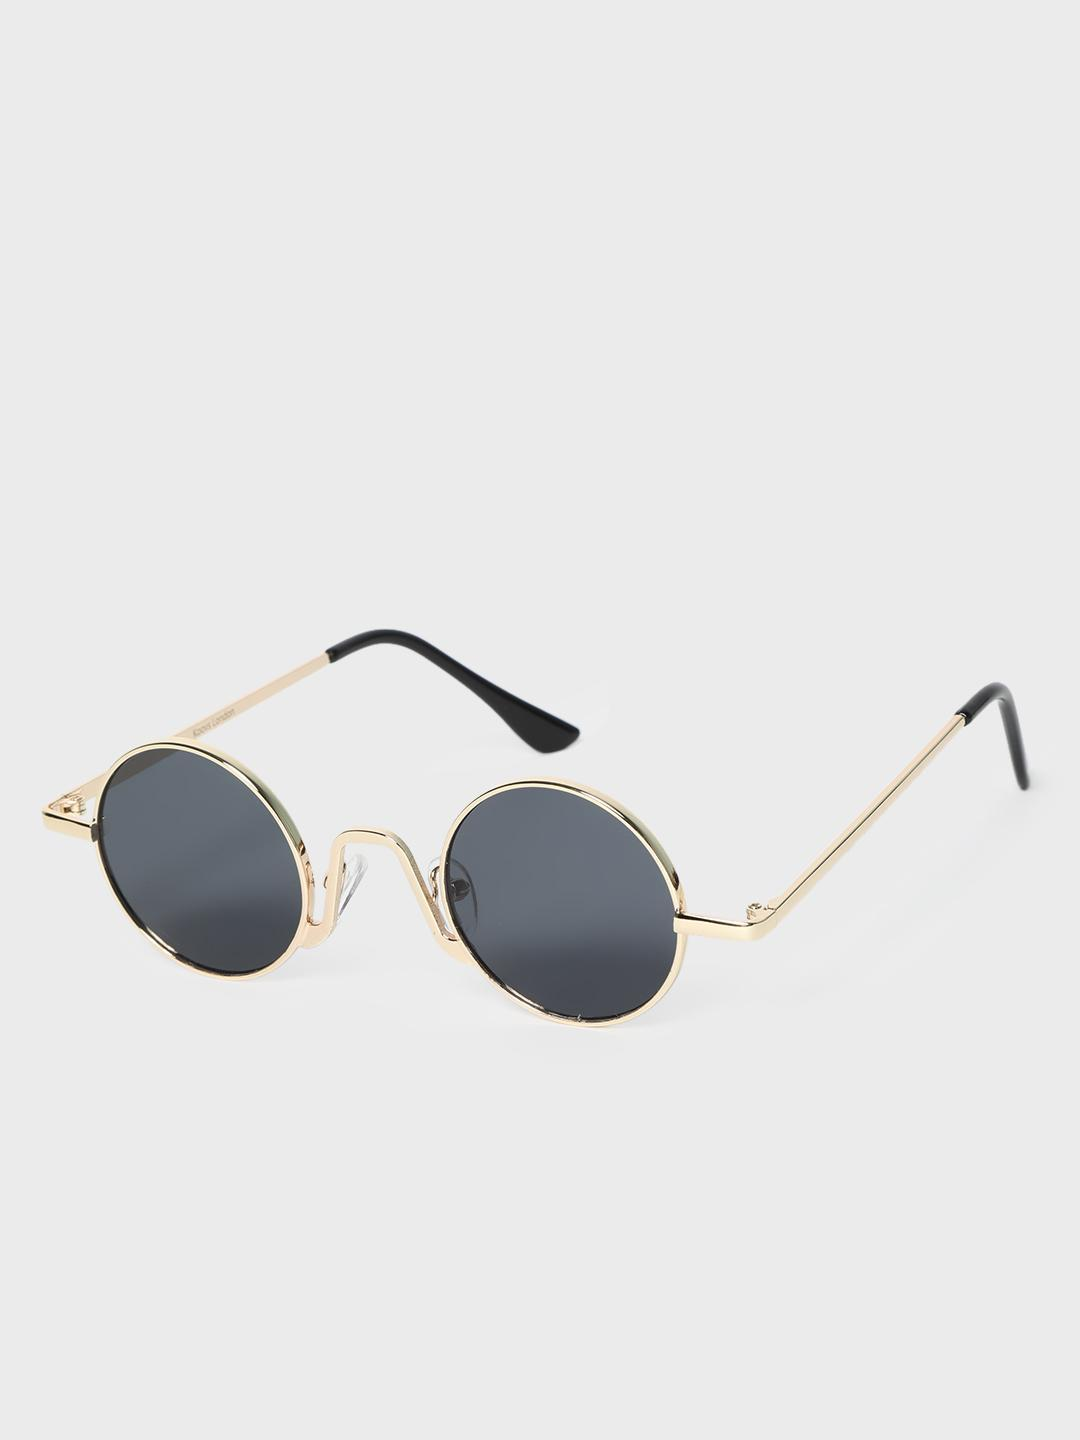 KOOVS Black Coloured Lens Round Sunglasses 1